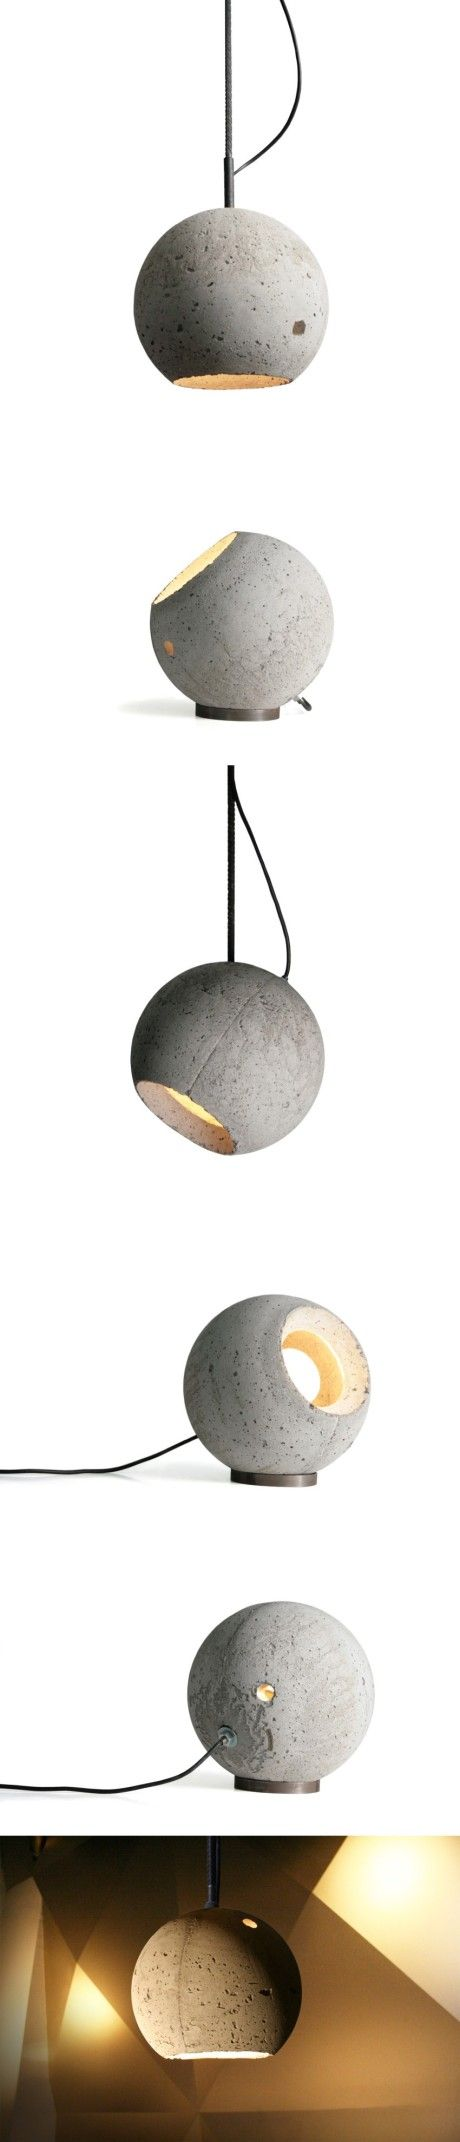 chic hanging lighting ideas lamp. Our Topic For Today Is DIY Concrete Ideas A Chic Minimal Design Line. Hanging Lighting Lamp